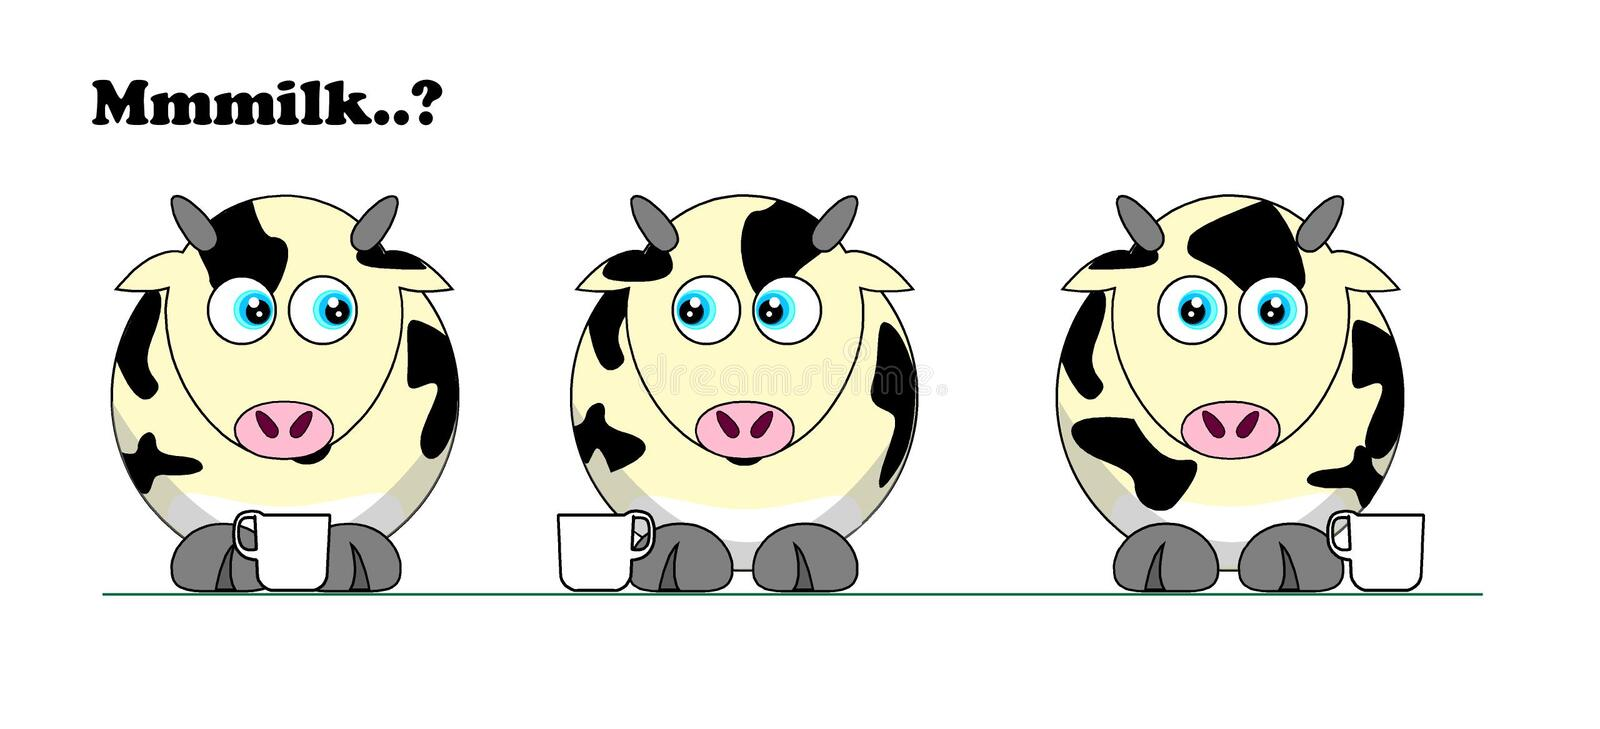 Got milk ? The Coffee Cows royalty free stock images